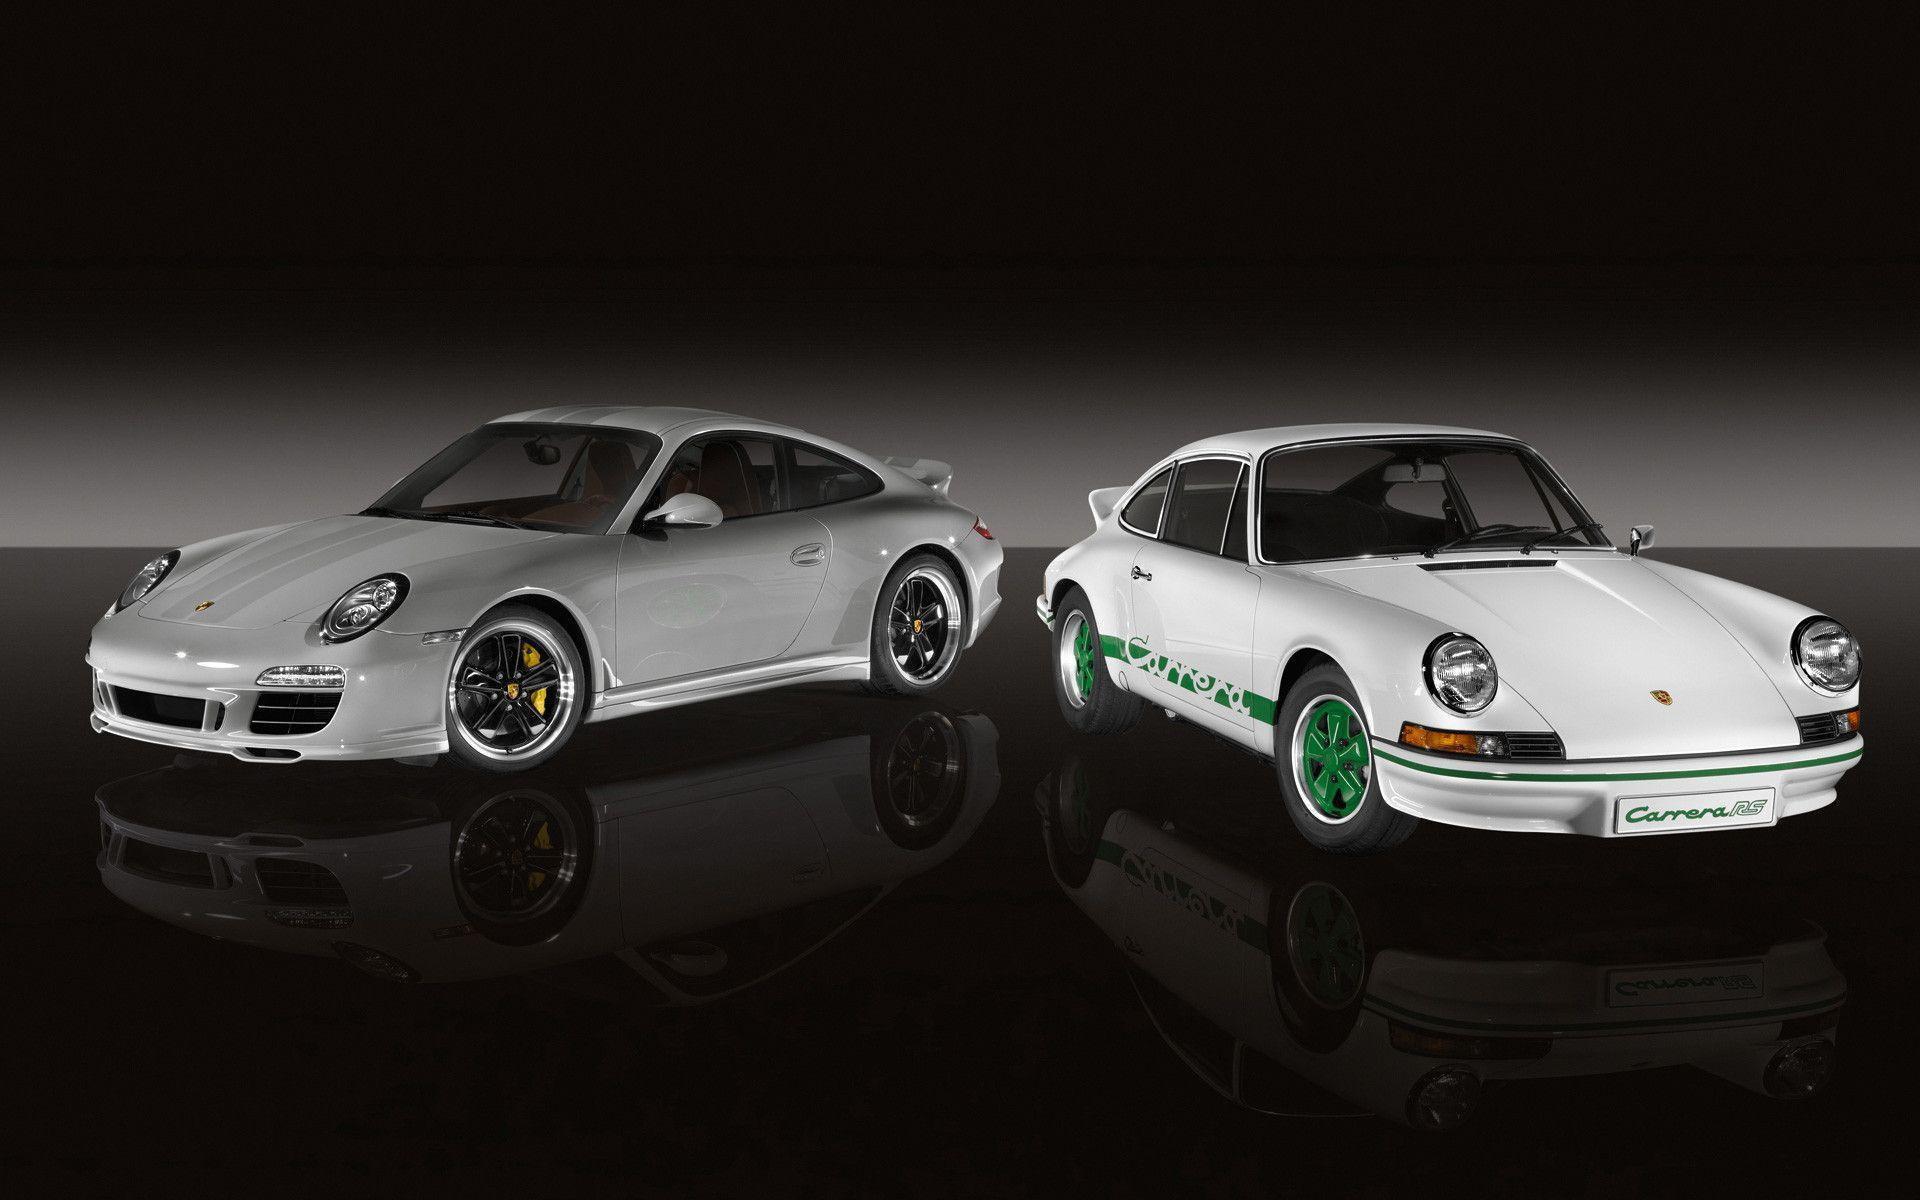 Porsche 911 Sport Classic Hd Wallpaper 18811 Full HD Wallpaper ...